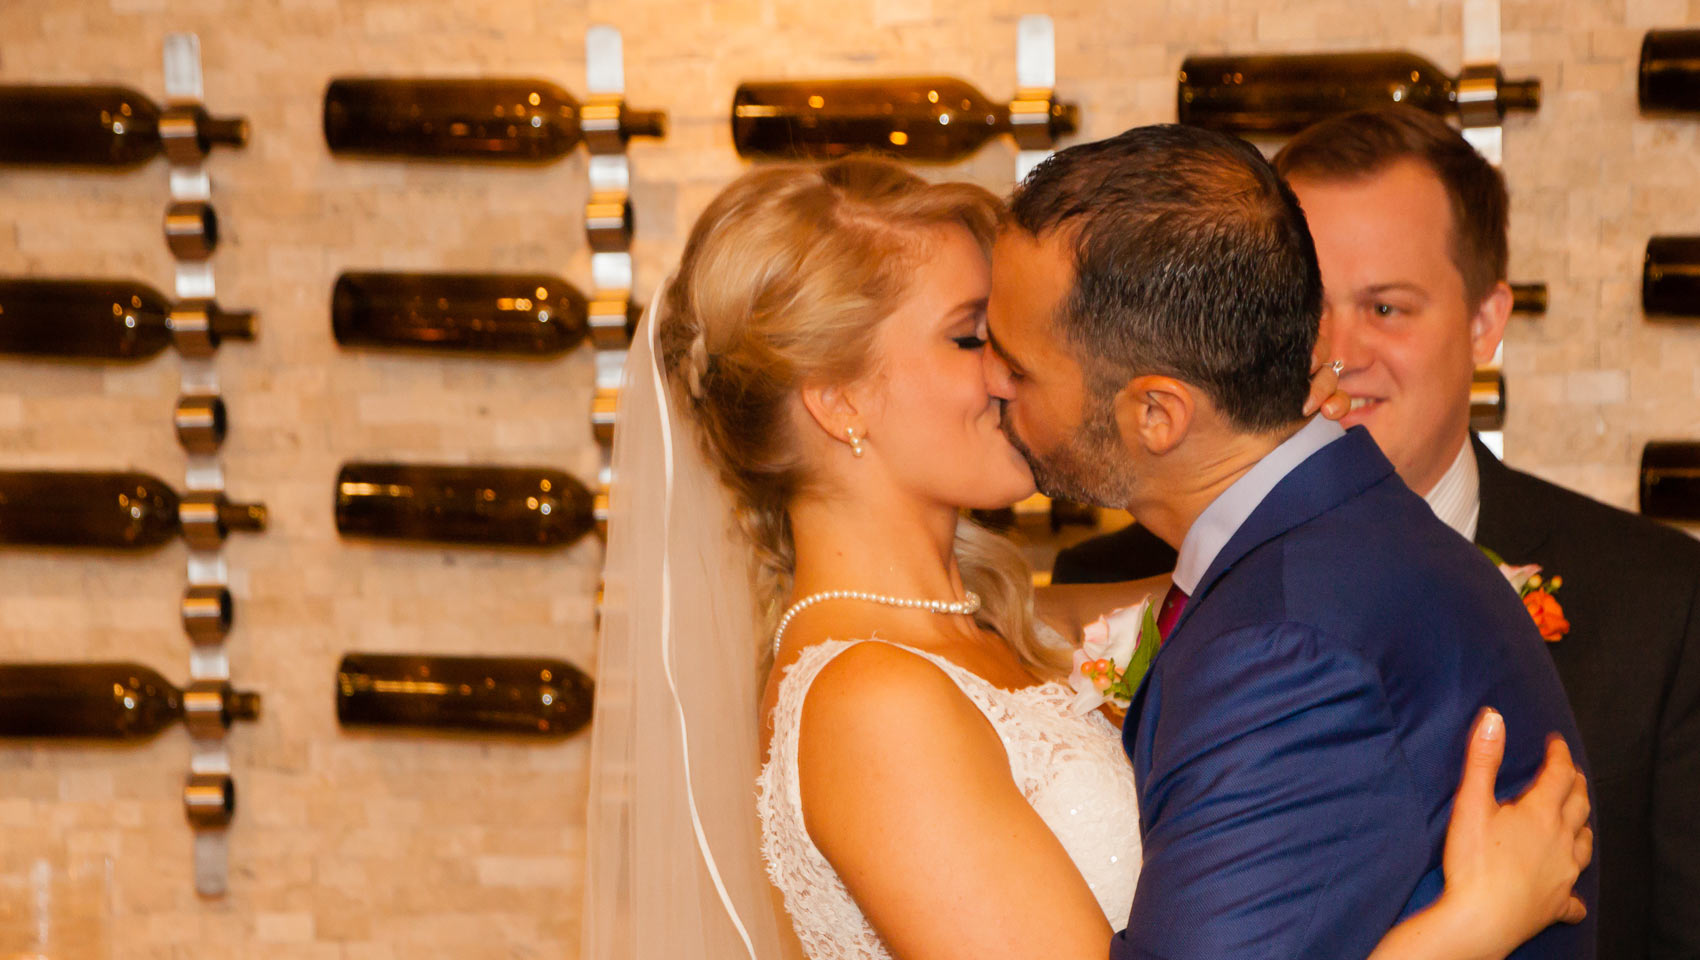 Monaco Denver Hotel Real Wedding Kiss